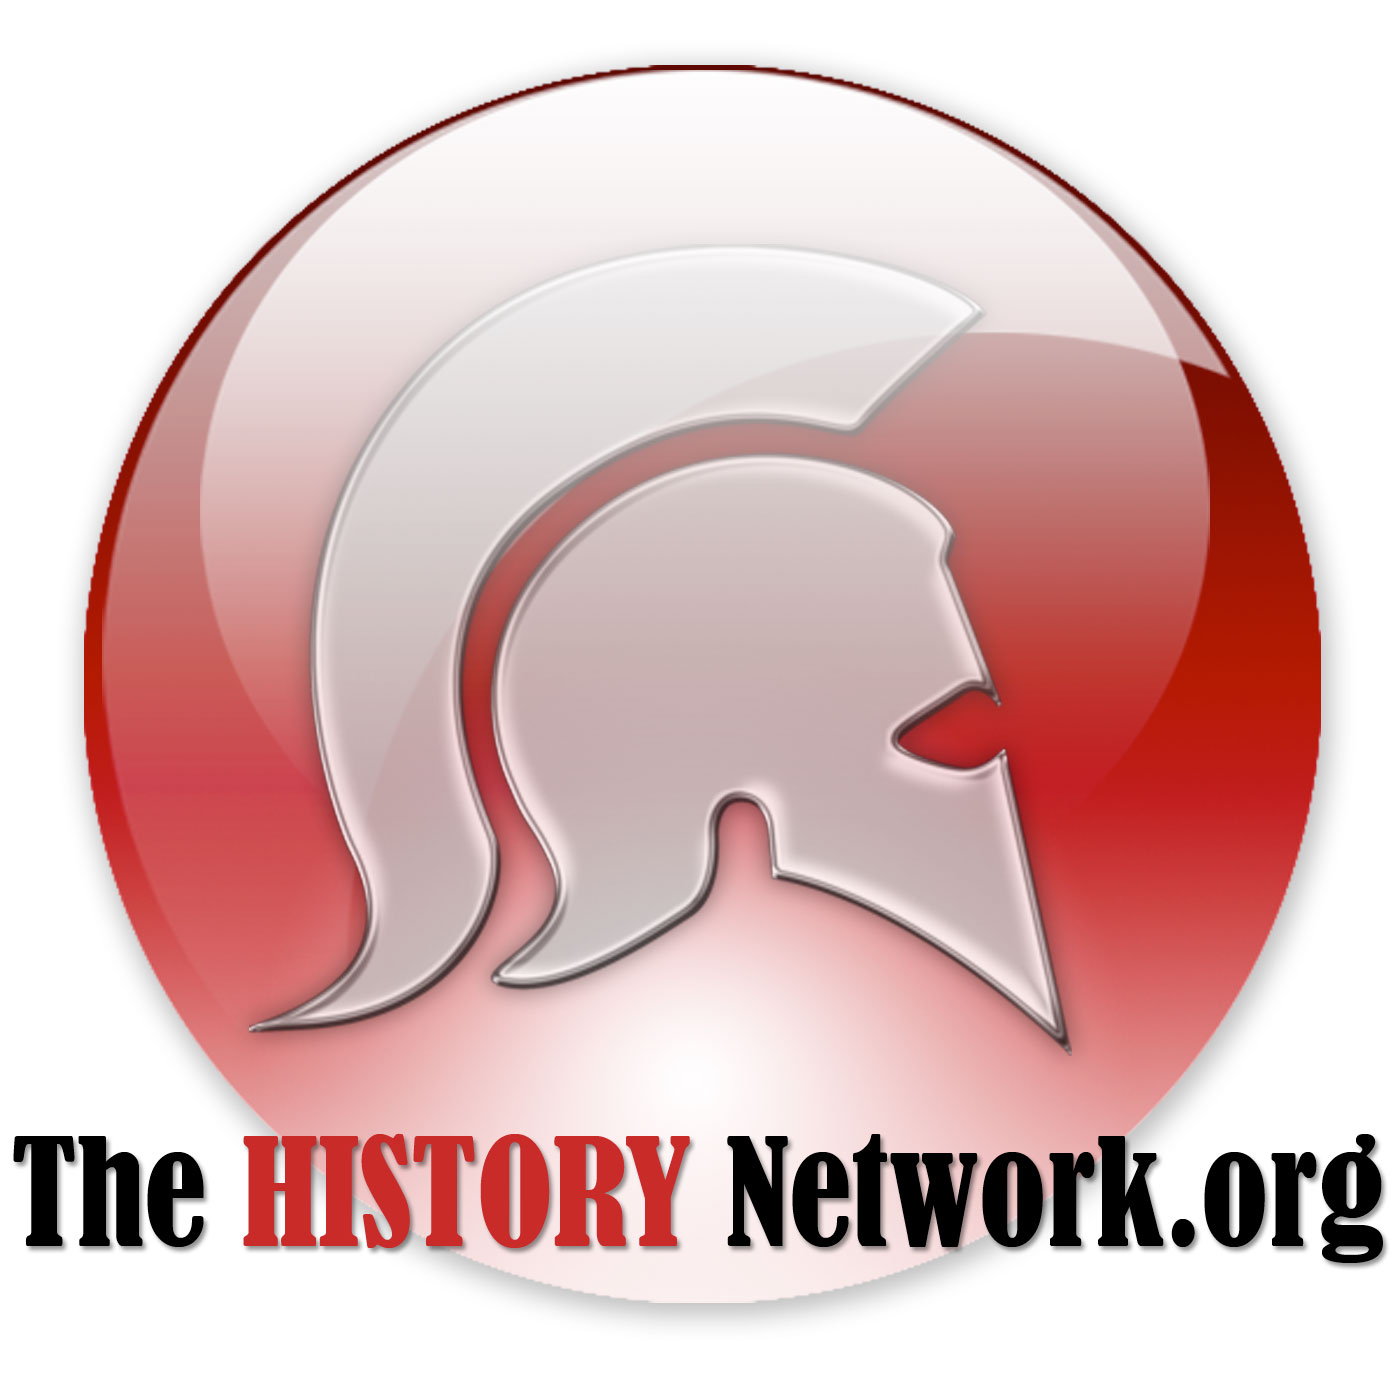 The History Network